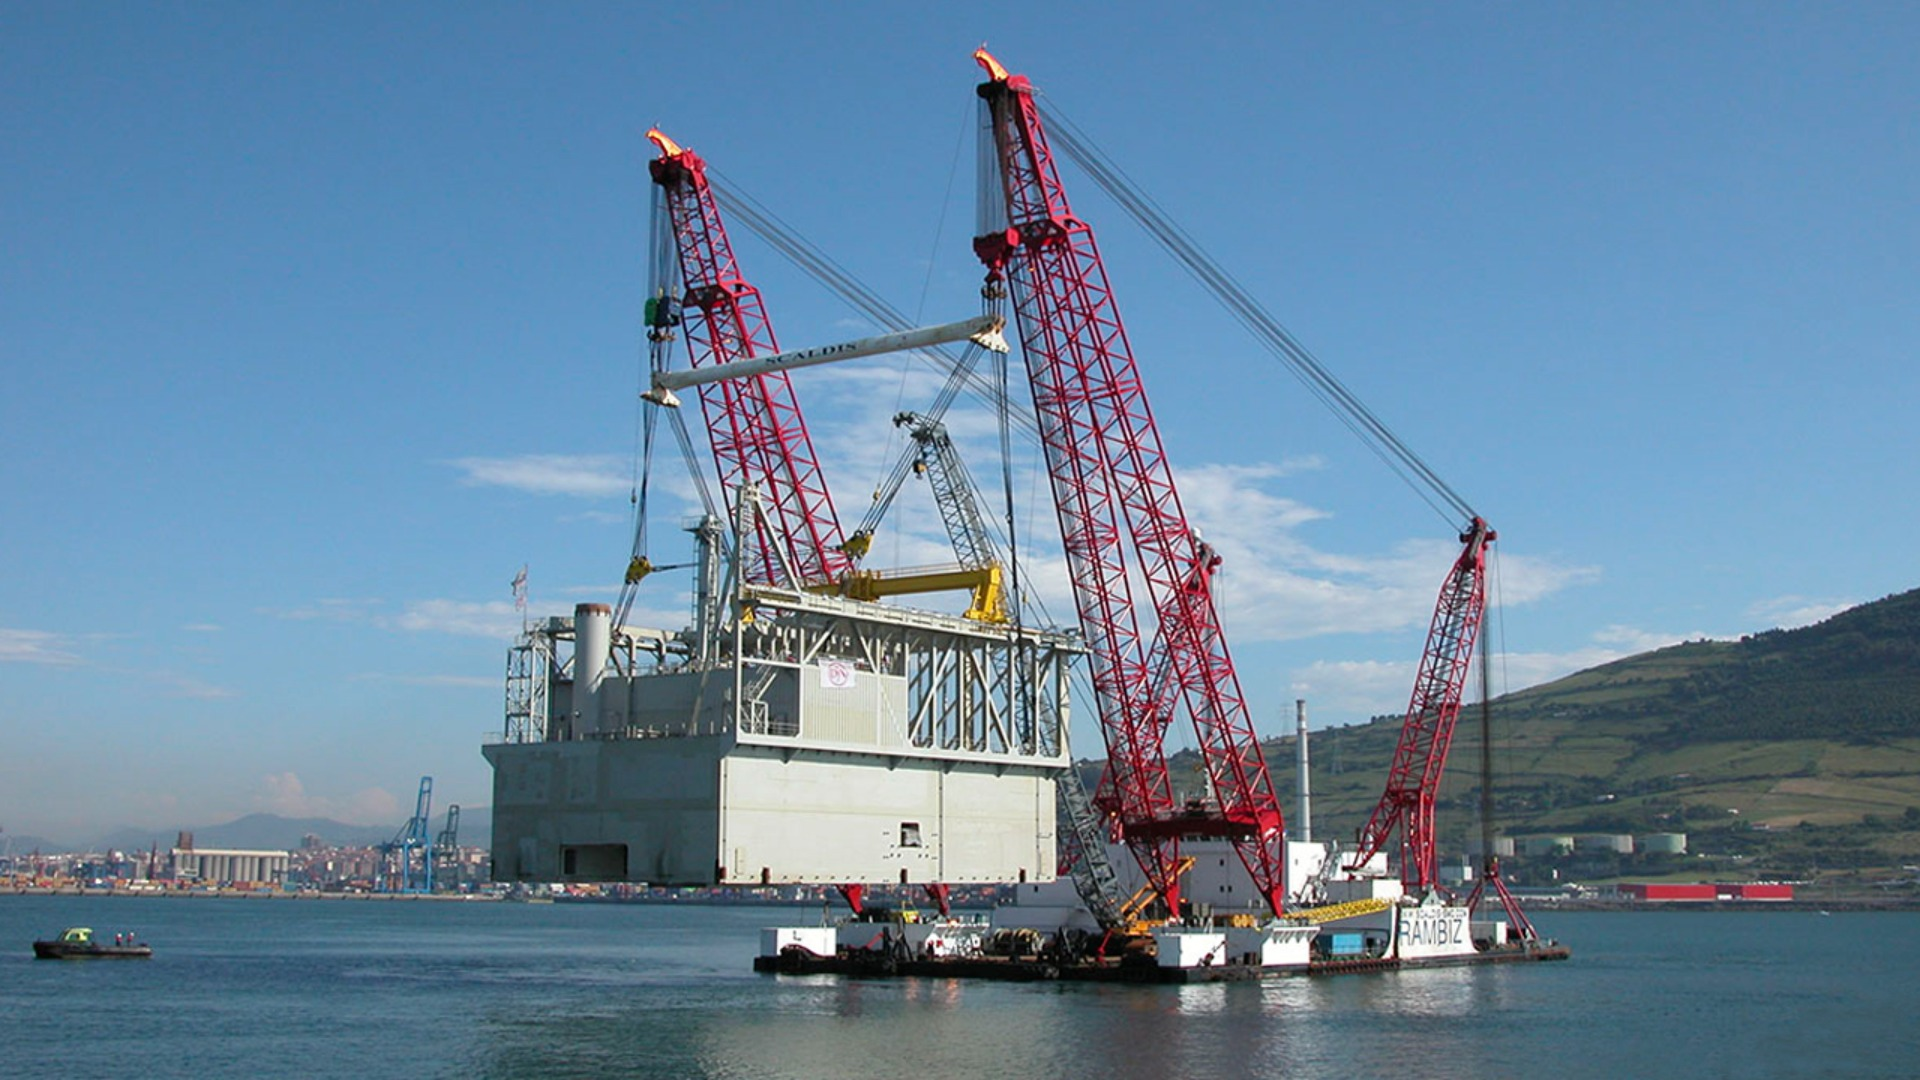 Image of Mining and fallpipe vessel Simon Stevin